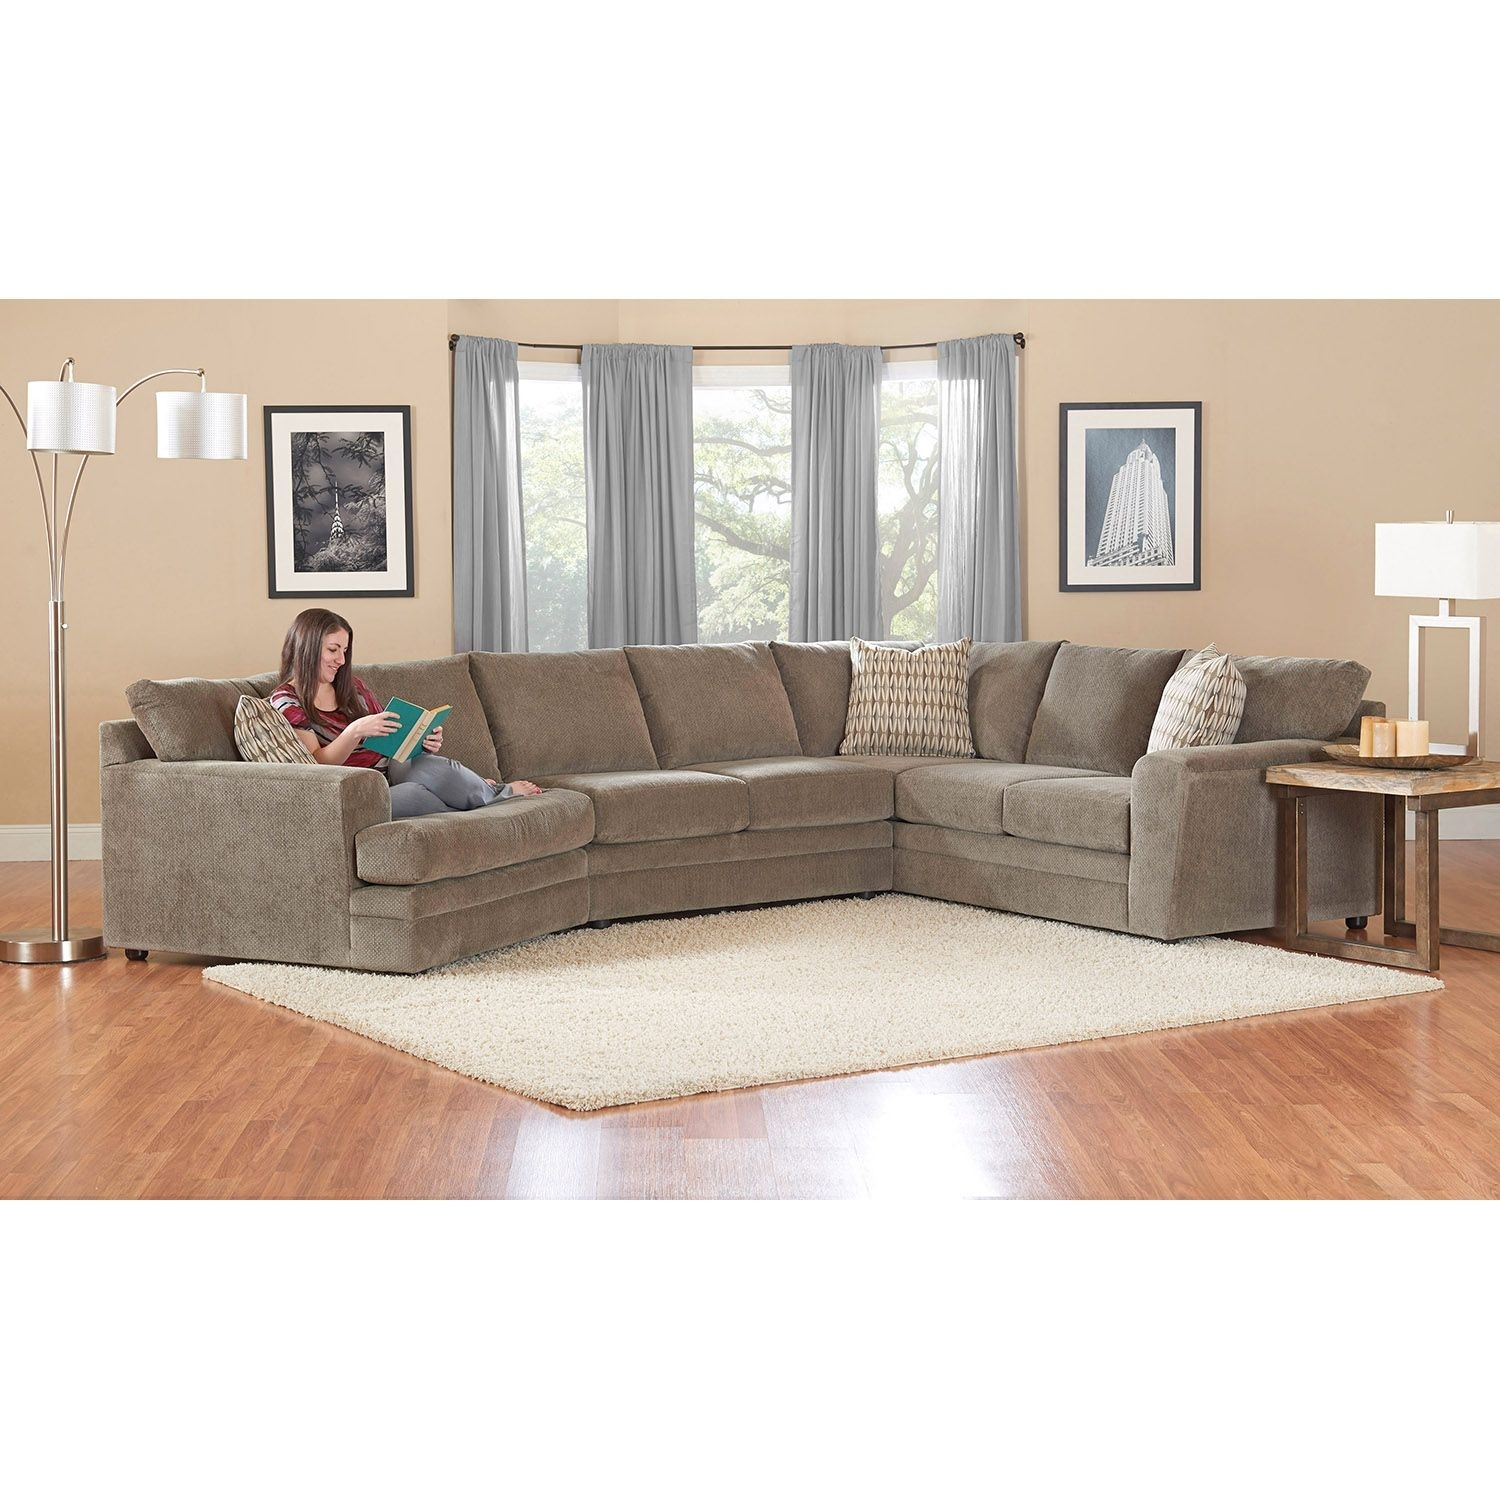 Prestige Ashburn Sectional Sofa - Sam's Club Gray Couch | Home inside Sectional Sofas at Sam's Club (Image 10 of 15)